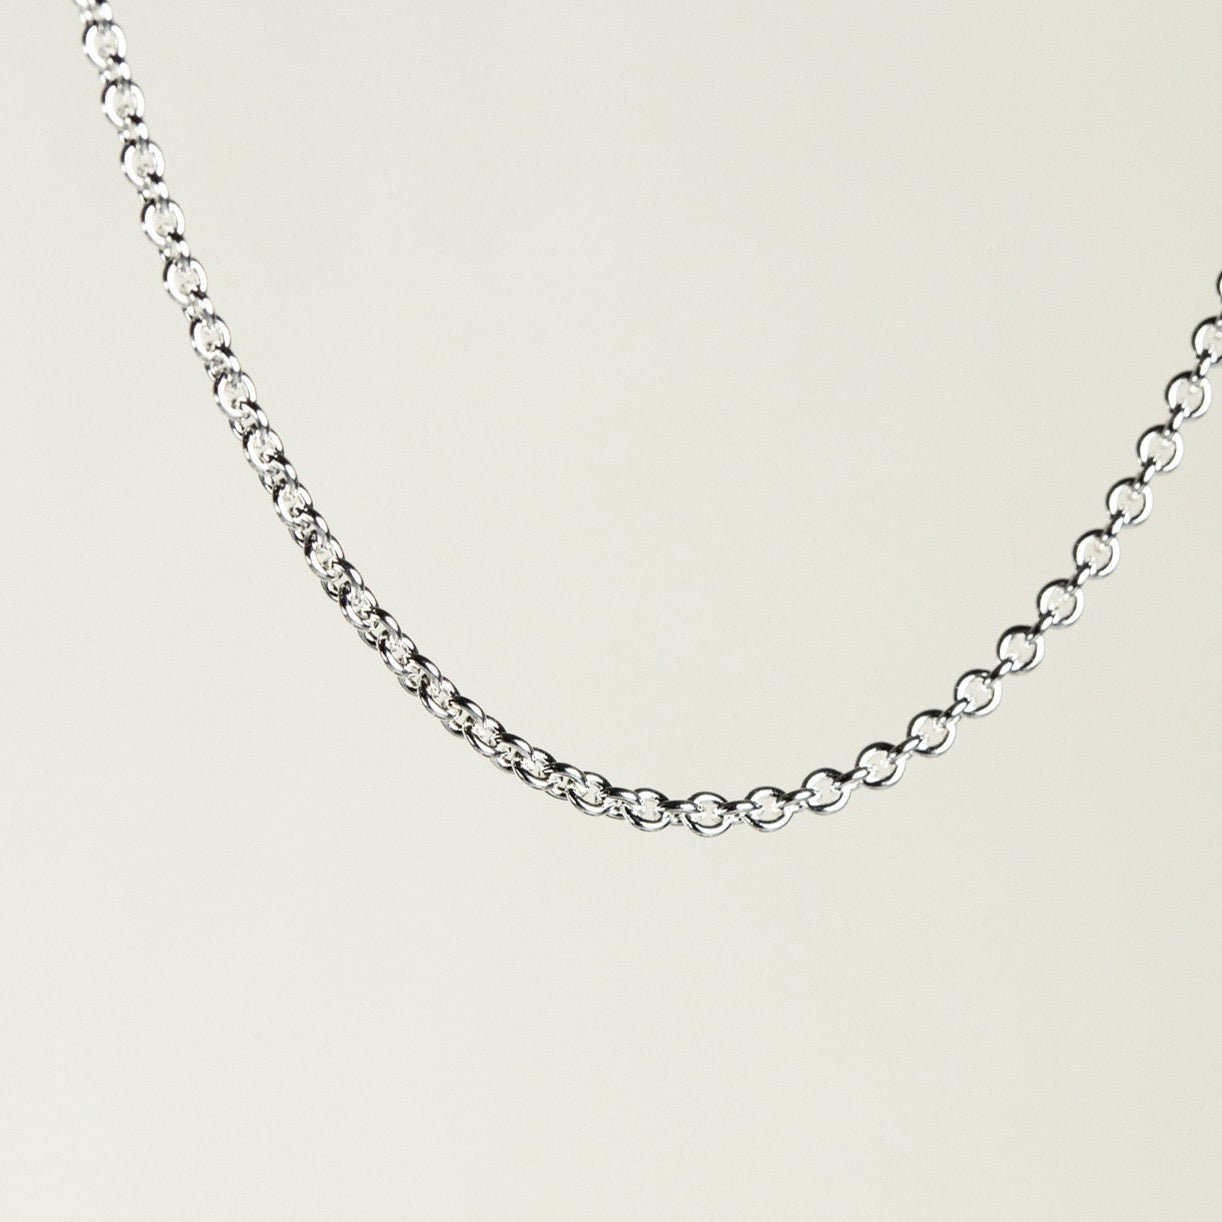 fine trace chain in white gold